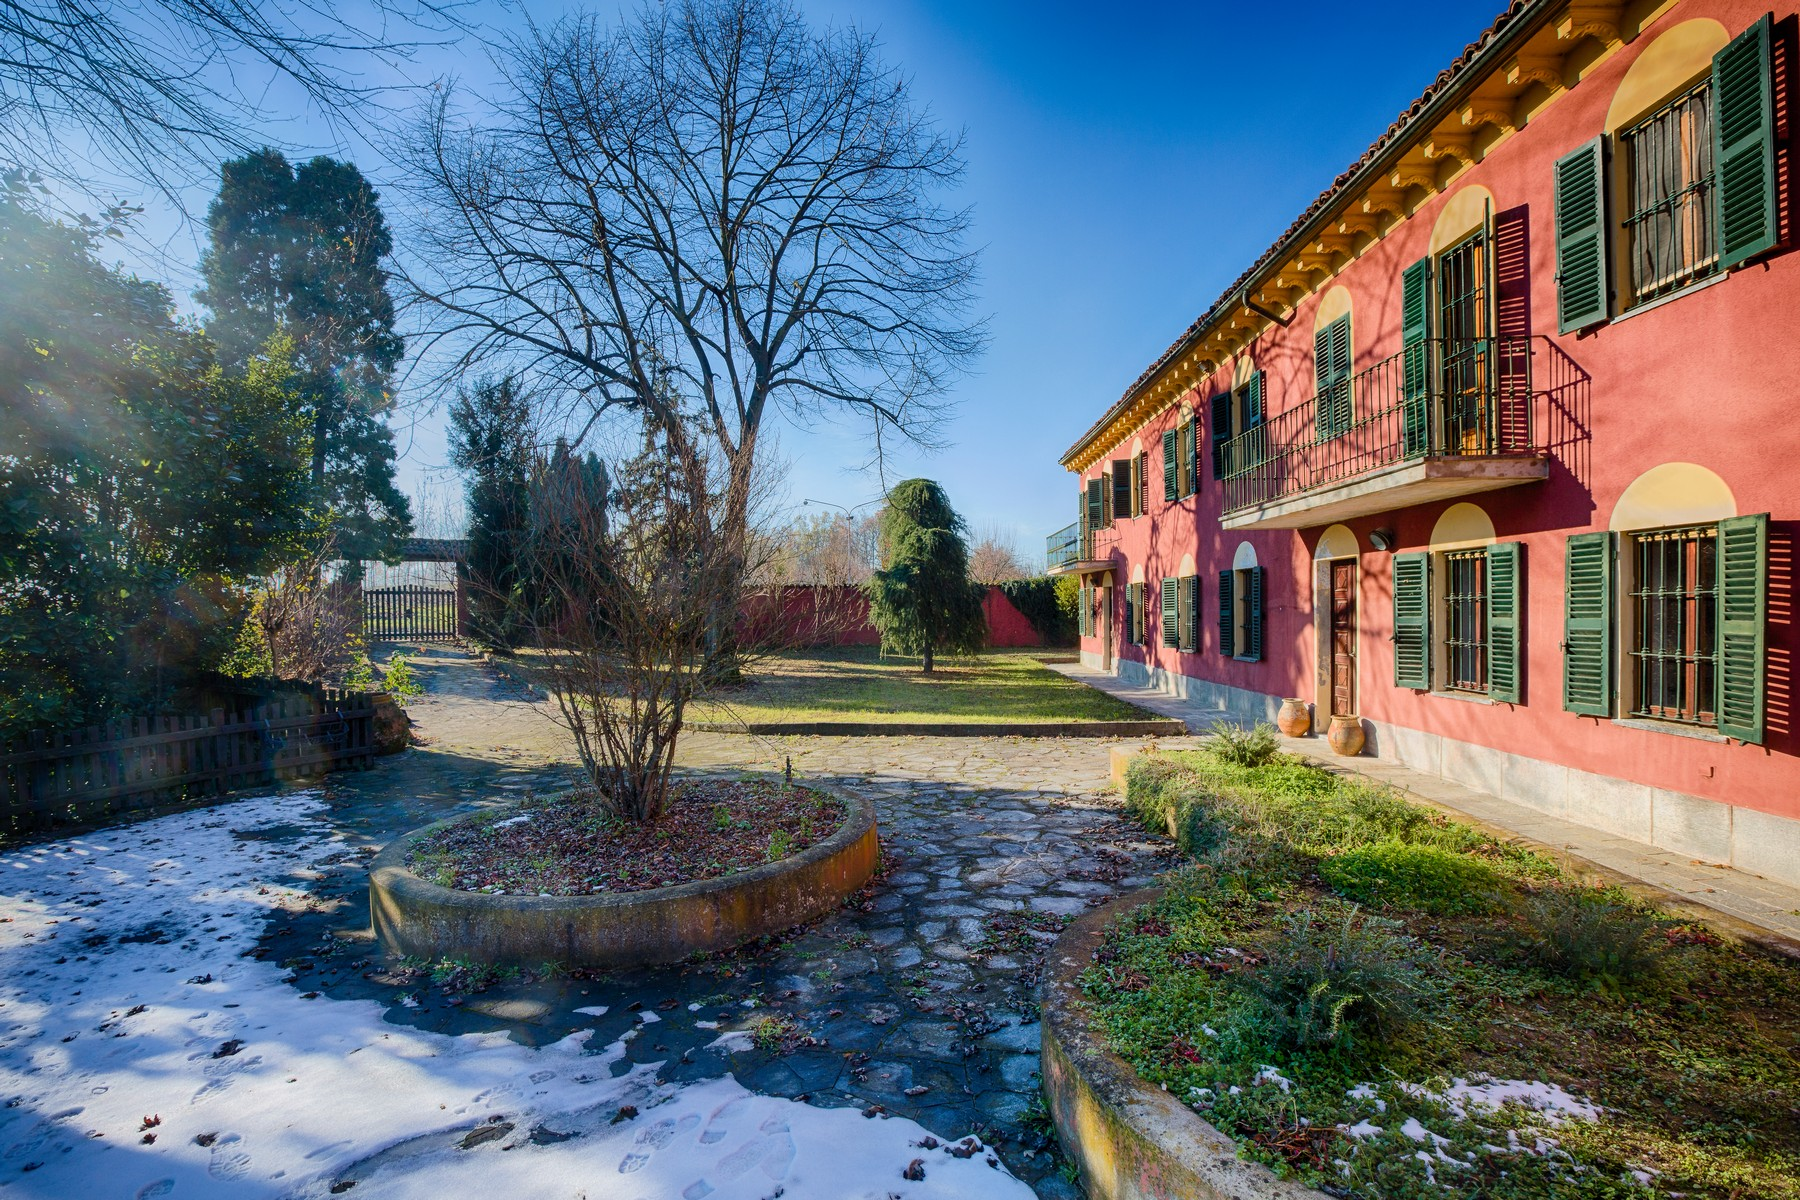 Single Family Homes for Sale at Incomparable farmhouse in the heart of the Monferrato region Fubine, Alessandria Italy